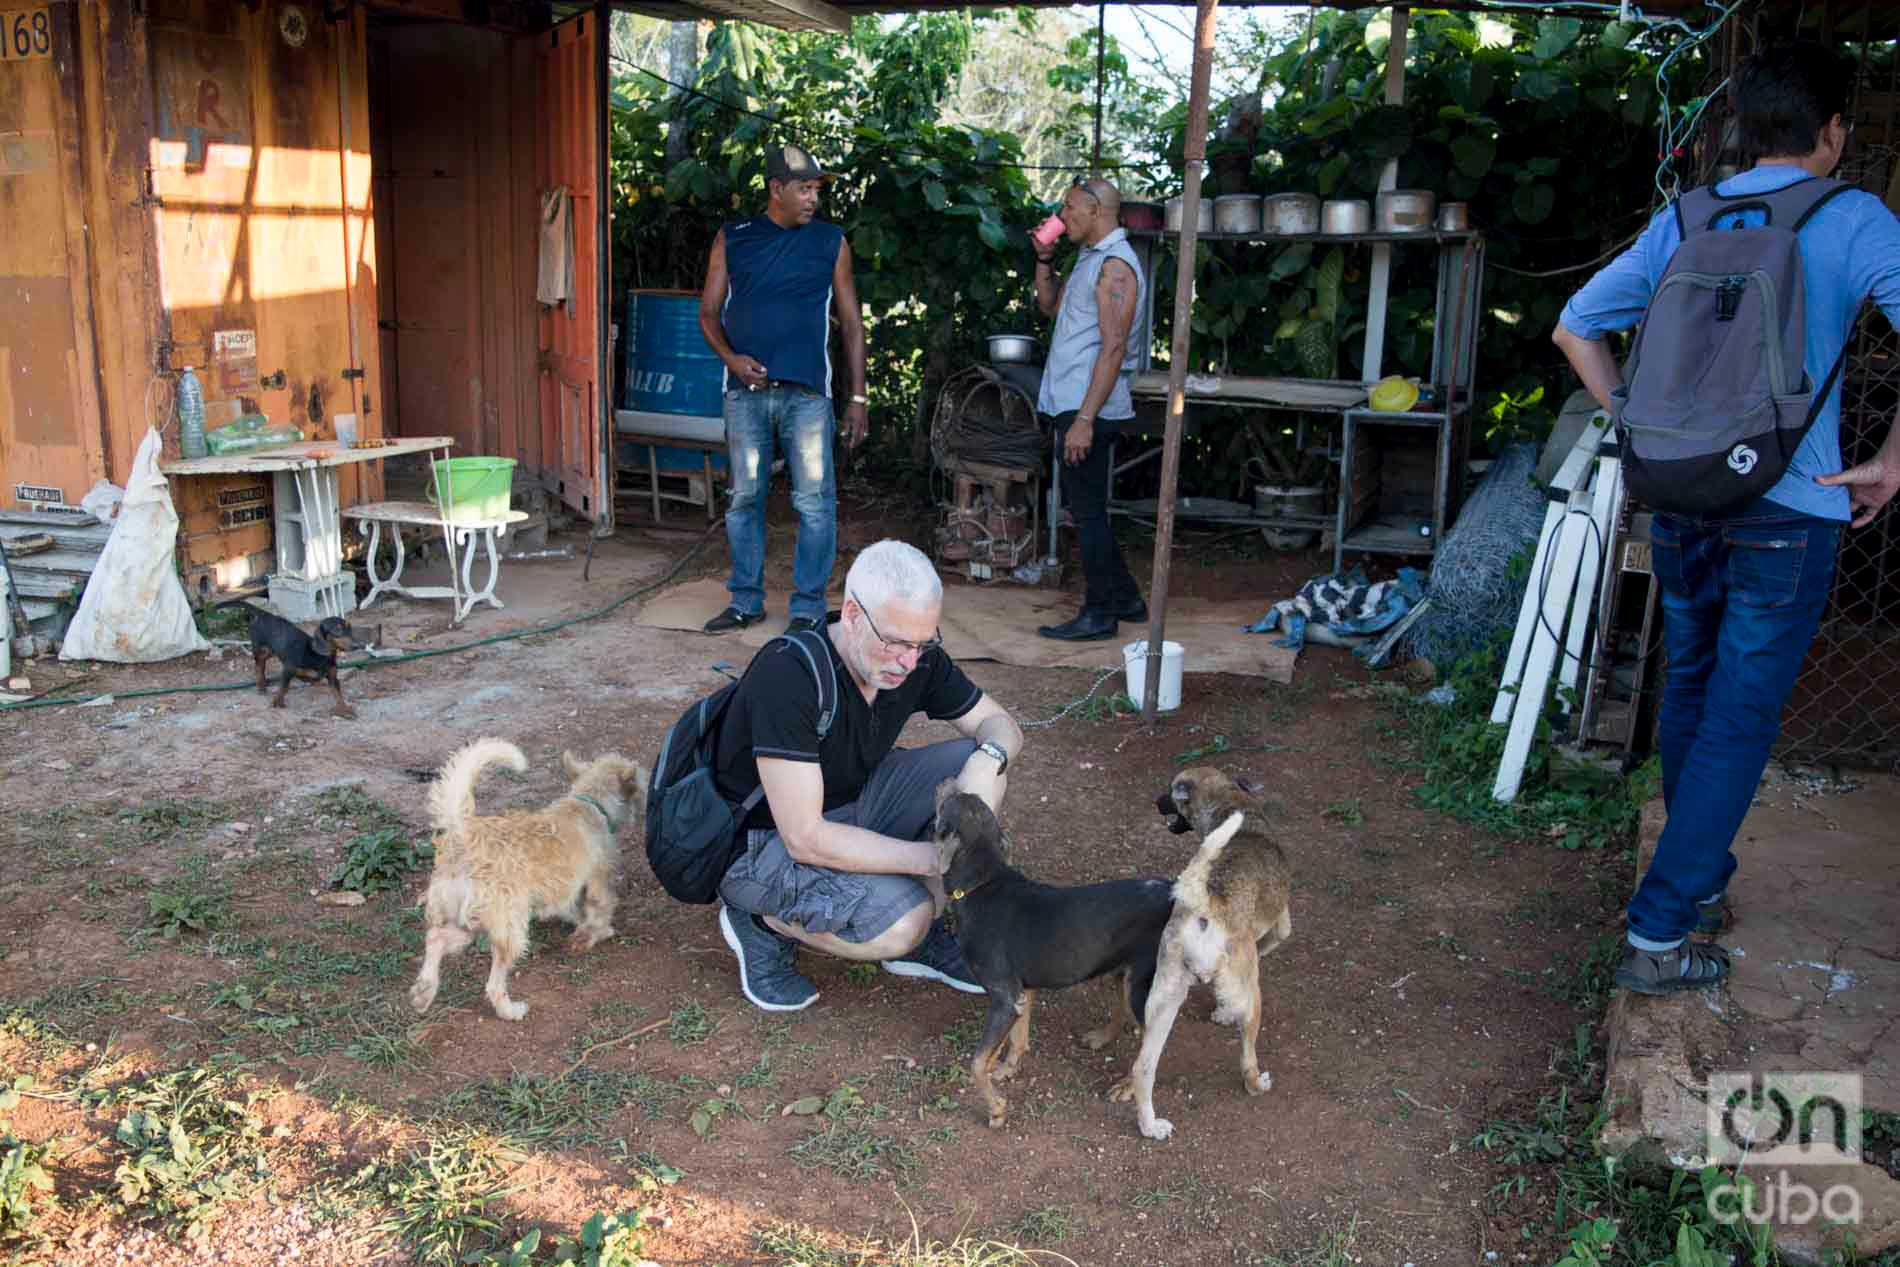 David Guggenheim (crouching), founder and director of Ocean Doctor, in the dog shelter of Venus and Ernesto, west of Havana. Photo: Otmaro Rodríguez.